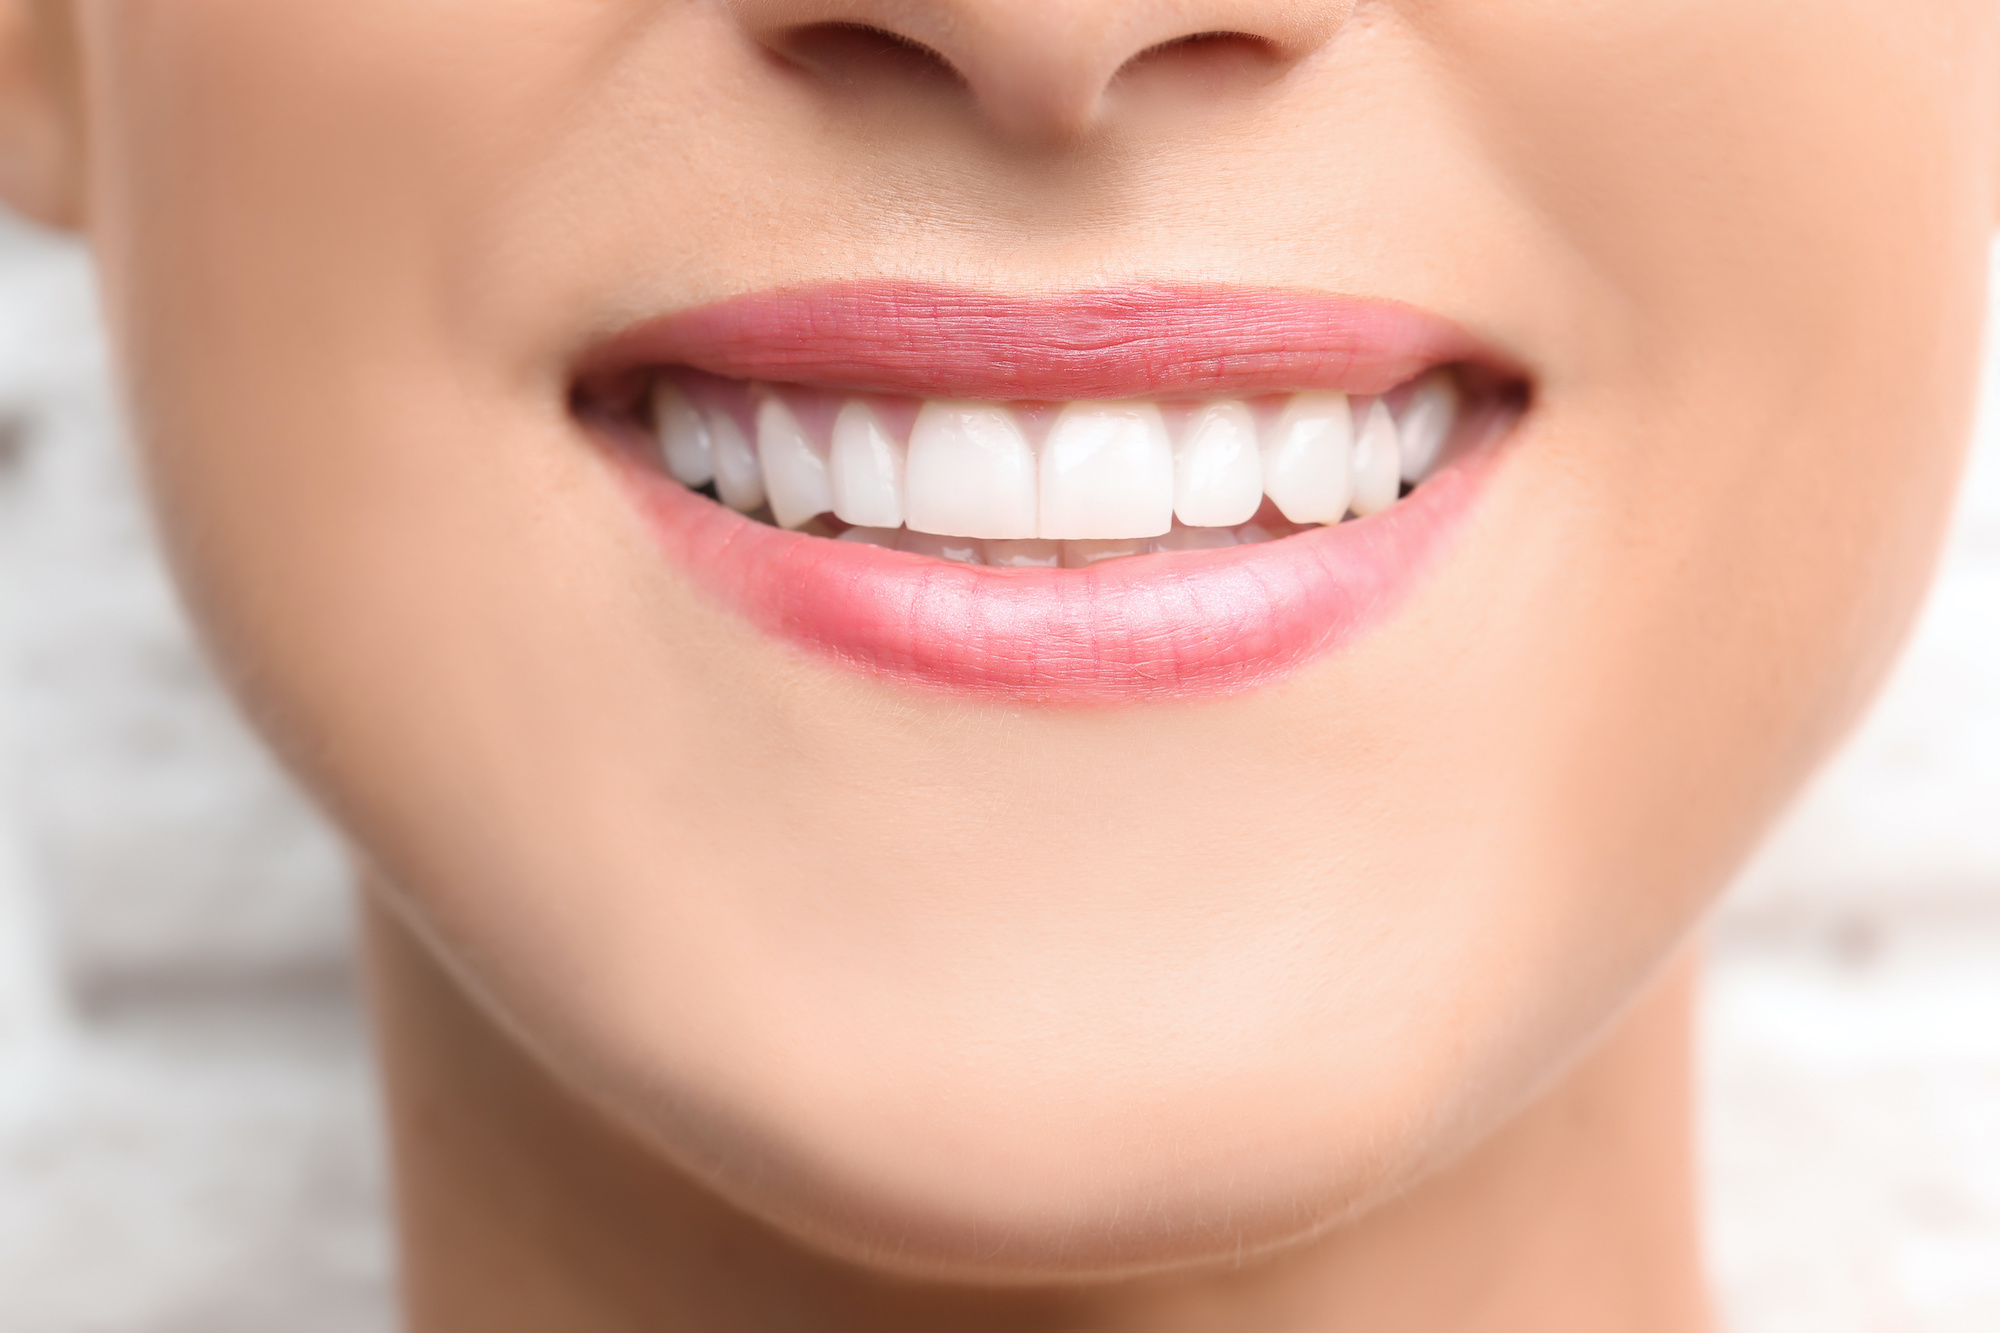 close up of teeth smiling